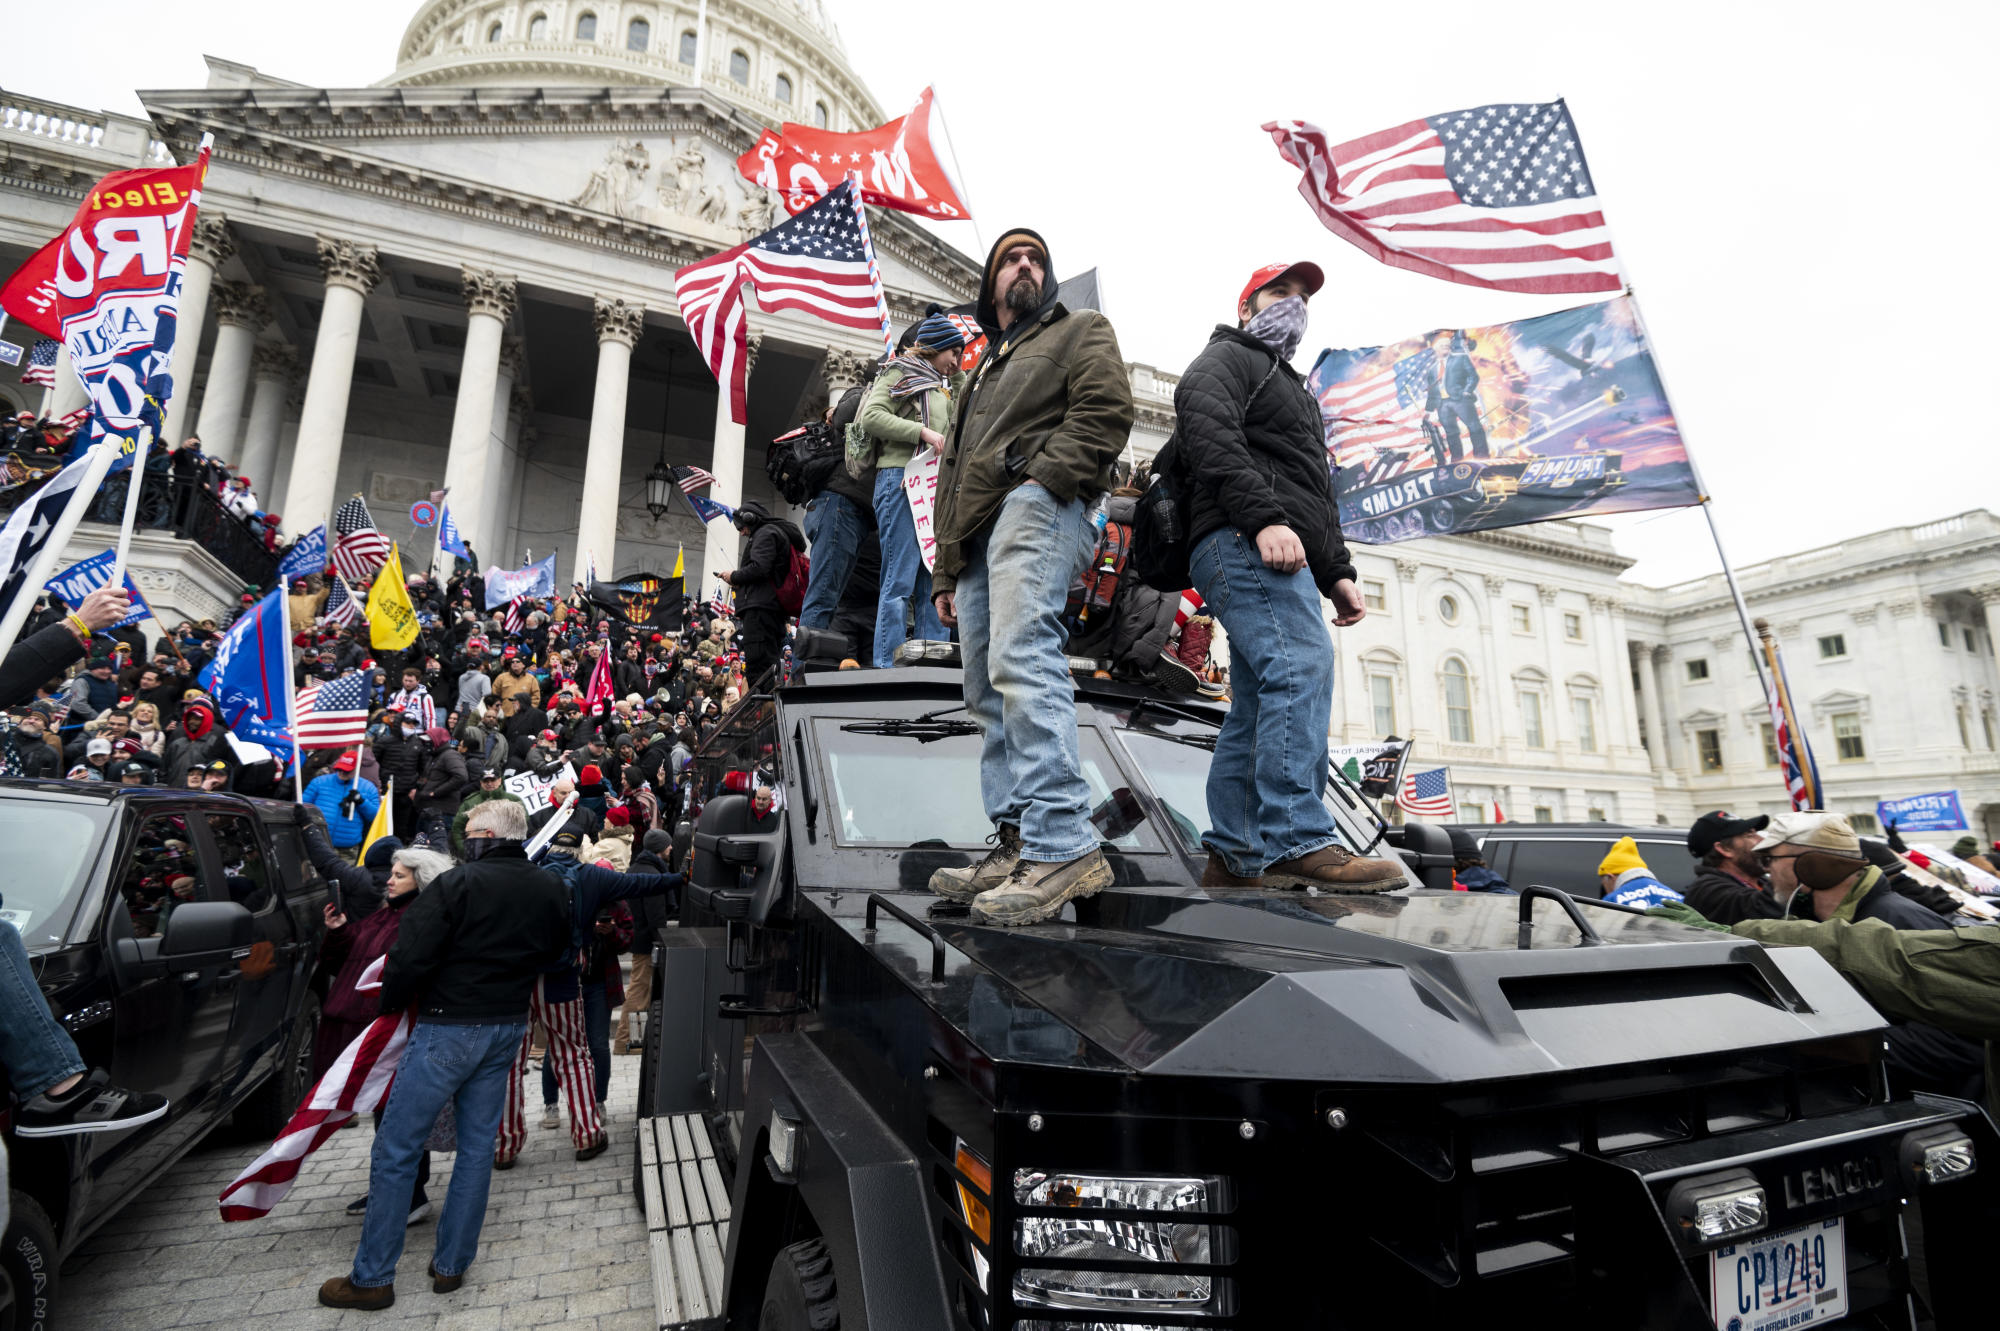 Trump supporters storm U.S. Capitol, clash with police